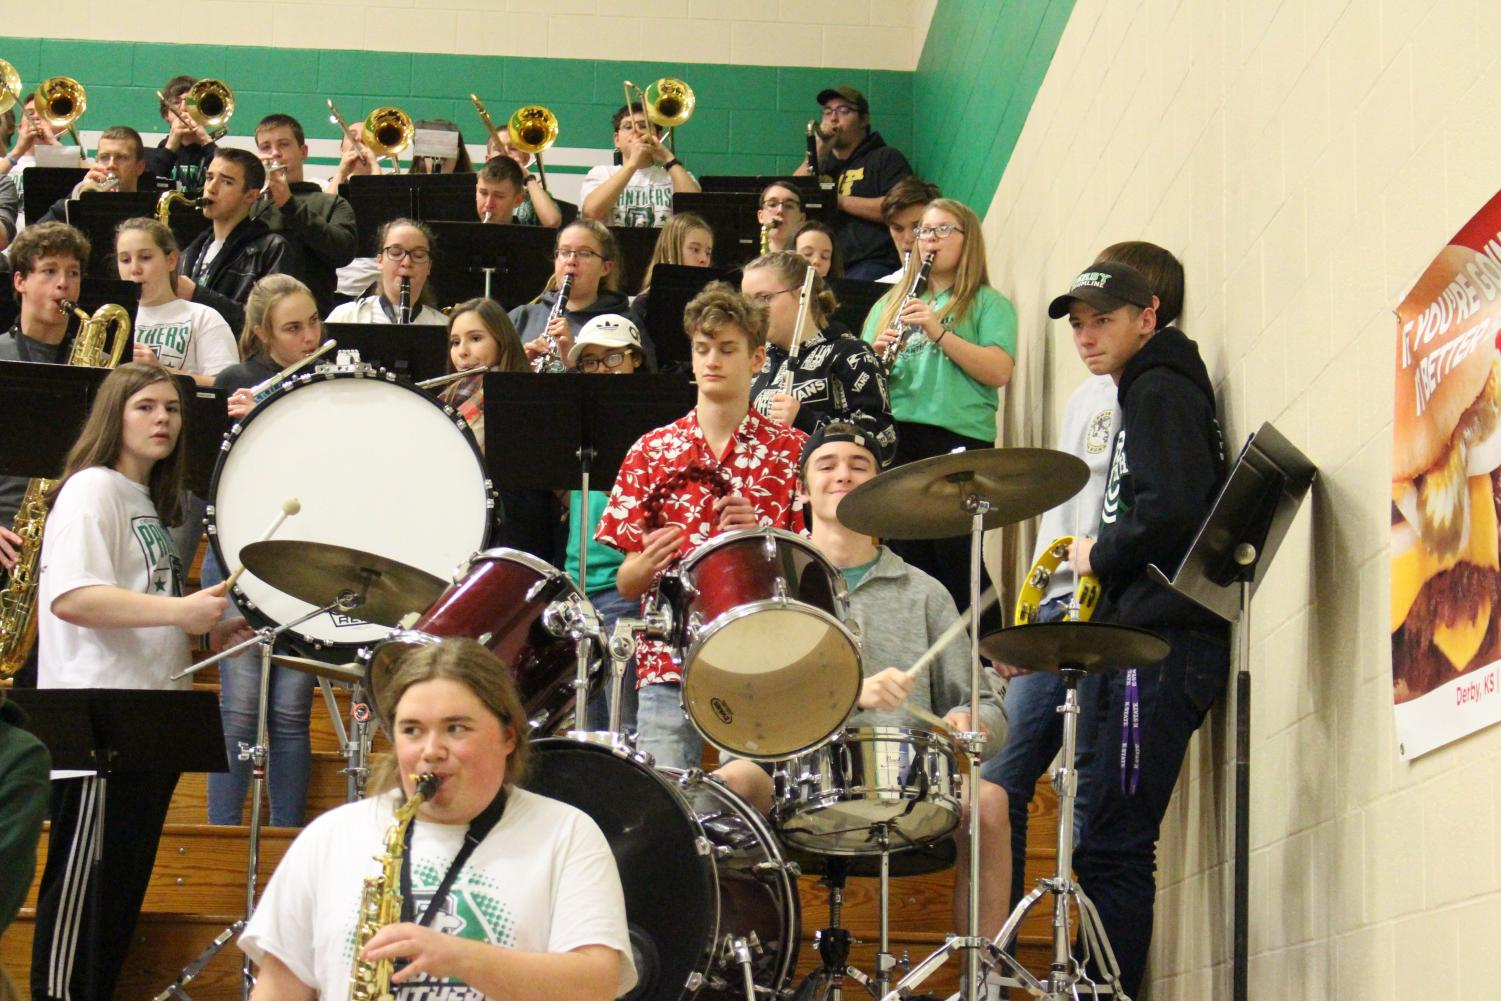 Derby+High+School+Basketball+Band+plays+at+Panther+Pal%27s+game.+Drummer%2C+sophomore+Nathan+Jolly+smiles+at+the+camera.